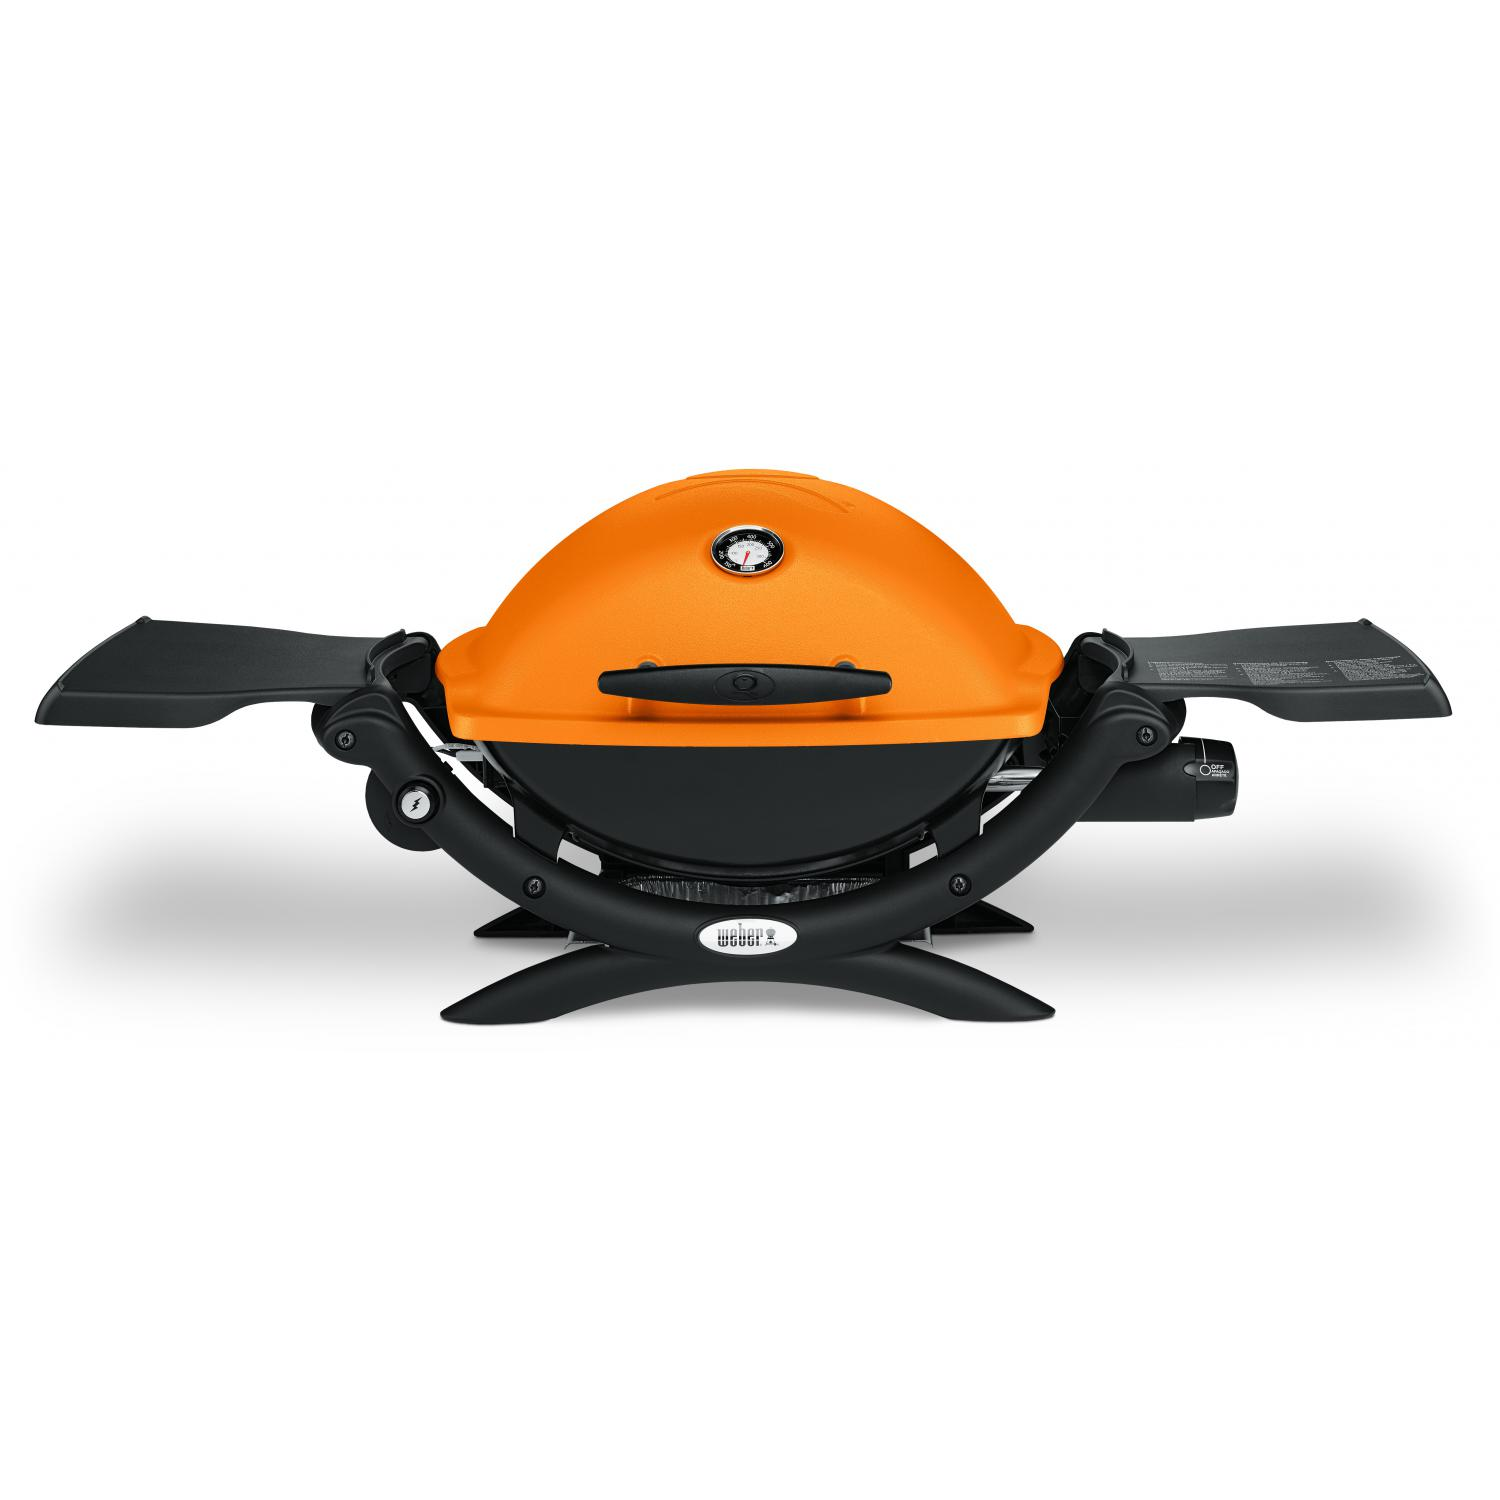 weber q 1200 portable propane gas grill orange ebay. Black Bedroom Furniture Sets. Home Design Ideas